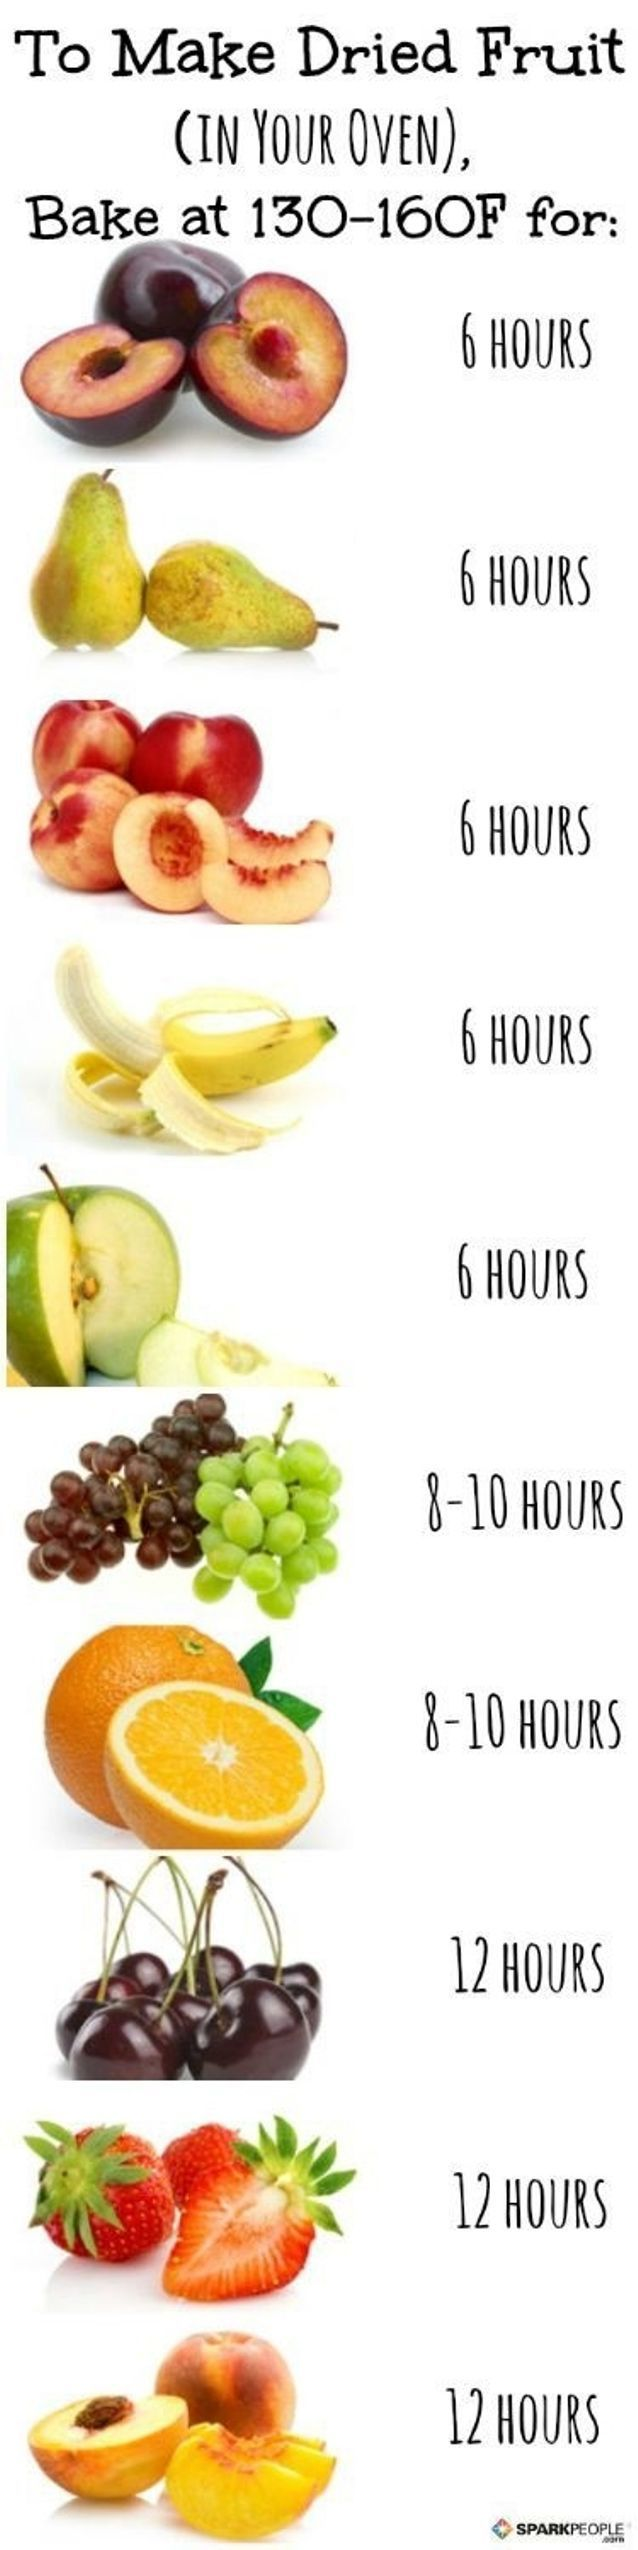 #Howto Make Dried Fruit #kitchen #tips #cooking #baking